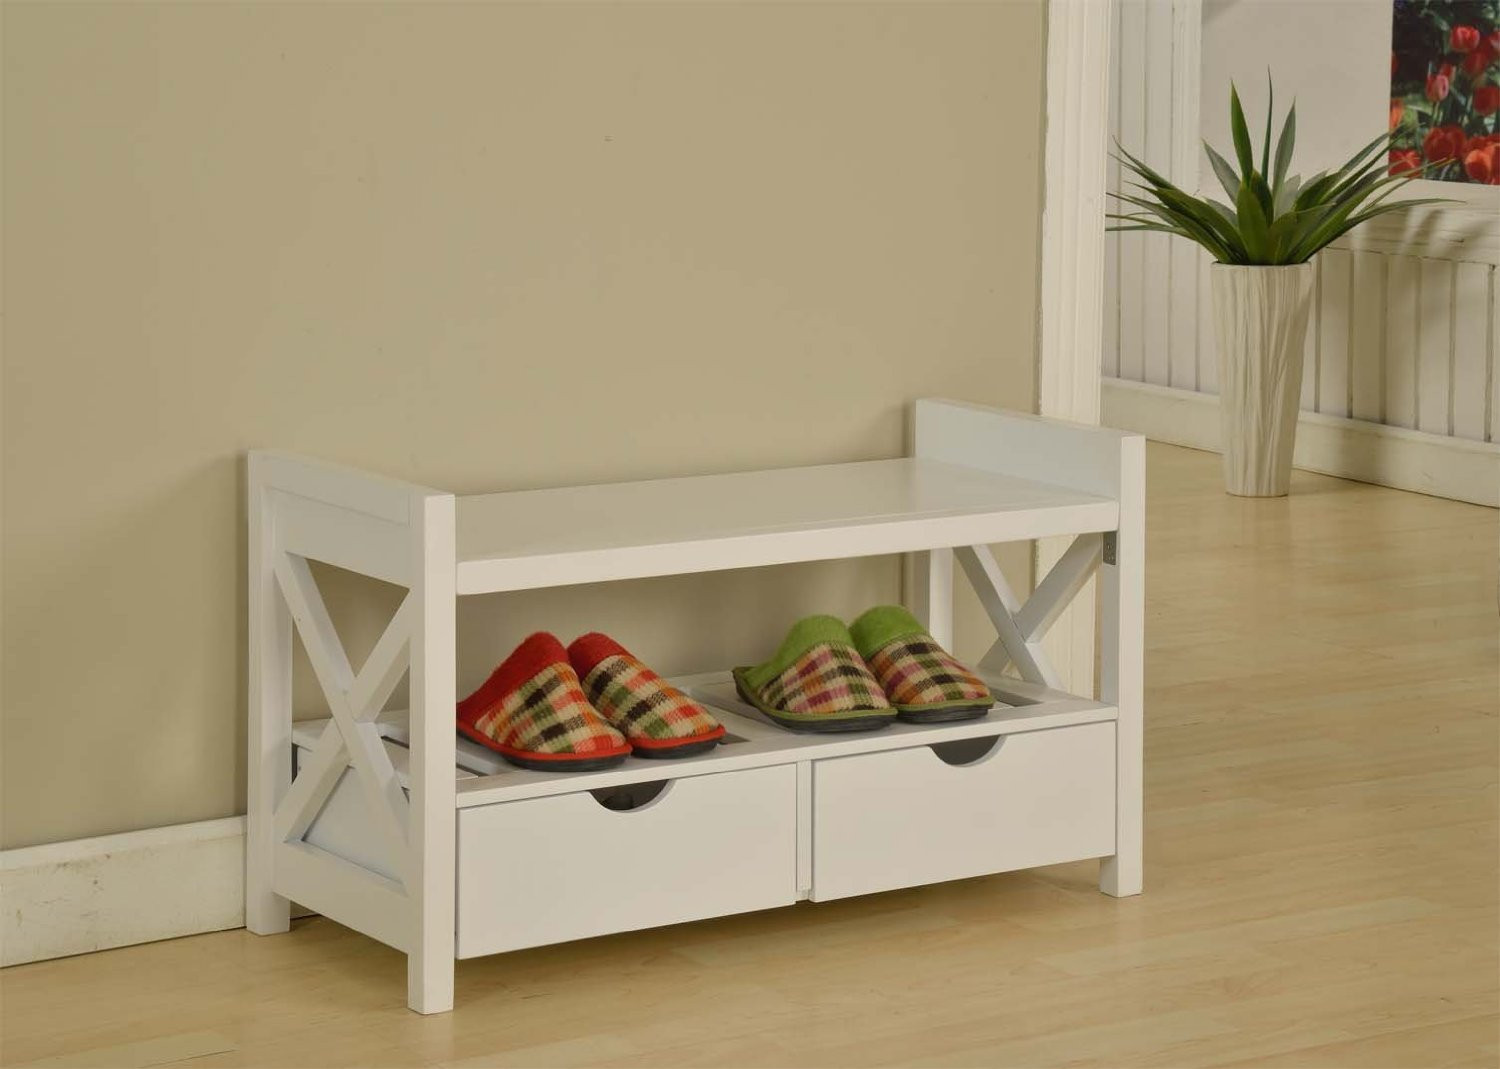 Best ideas about White Entryway Bench . Save or Pin White Entryway Bench Shoes — STABBEDINBACK Foyer Now.